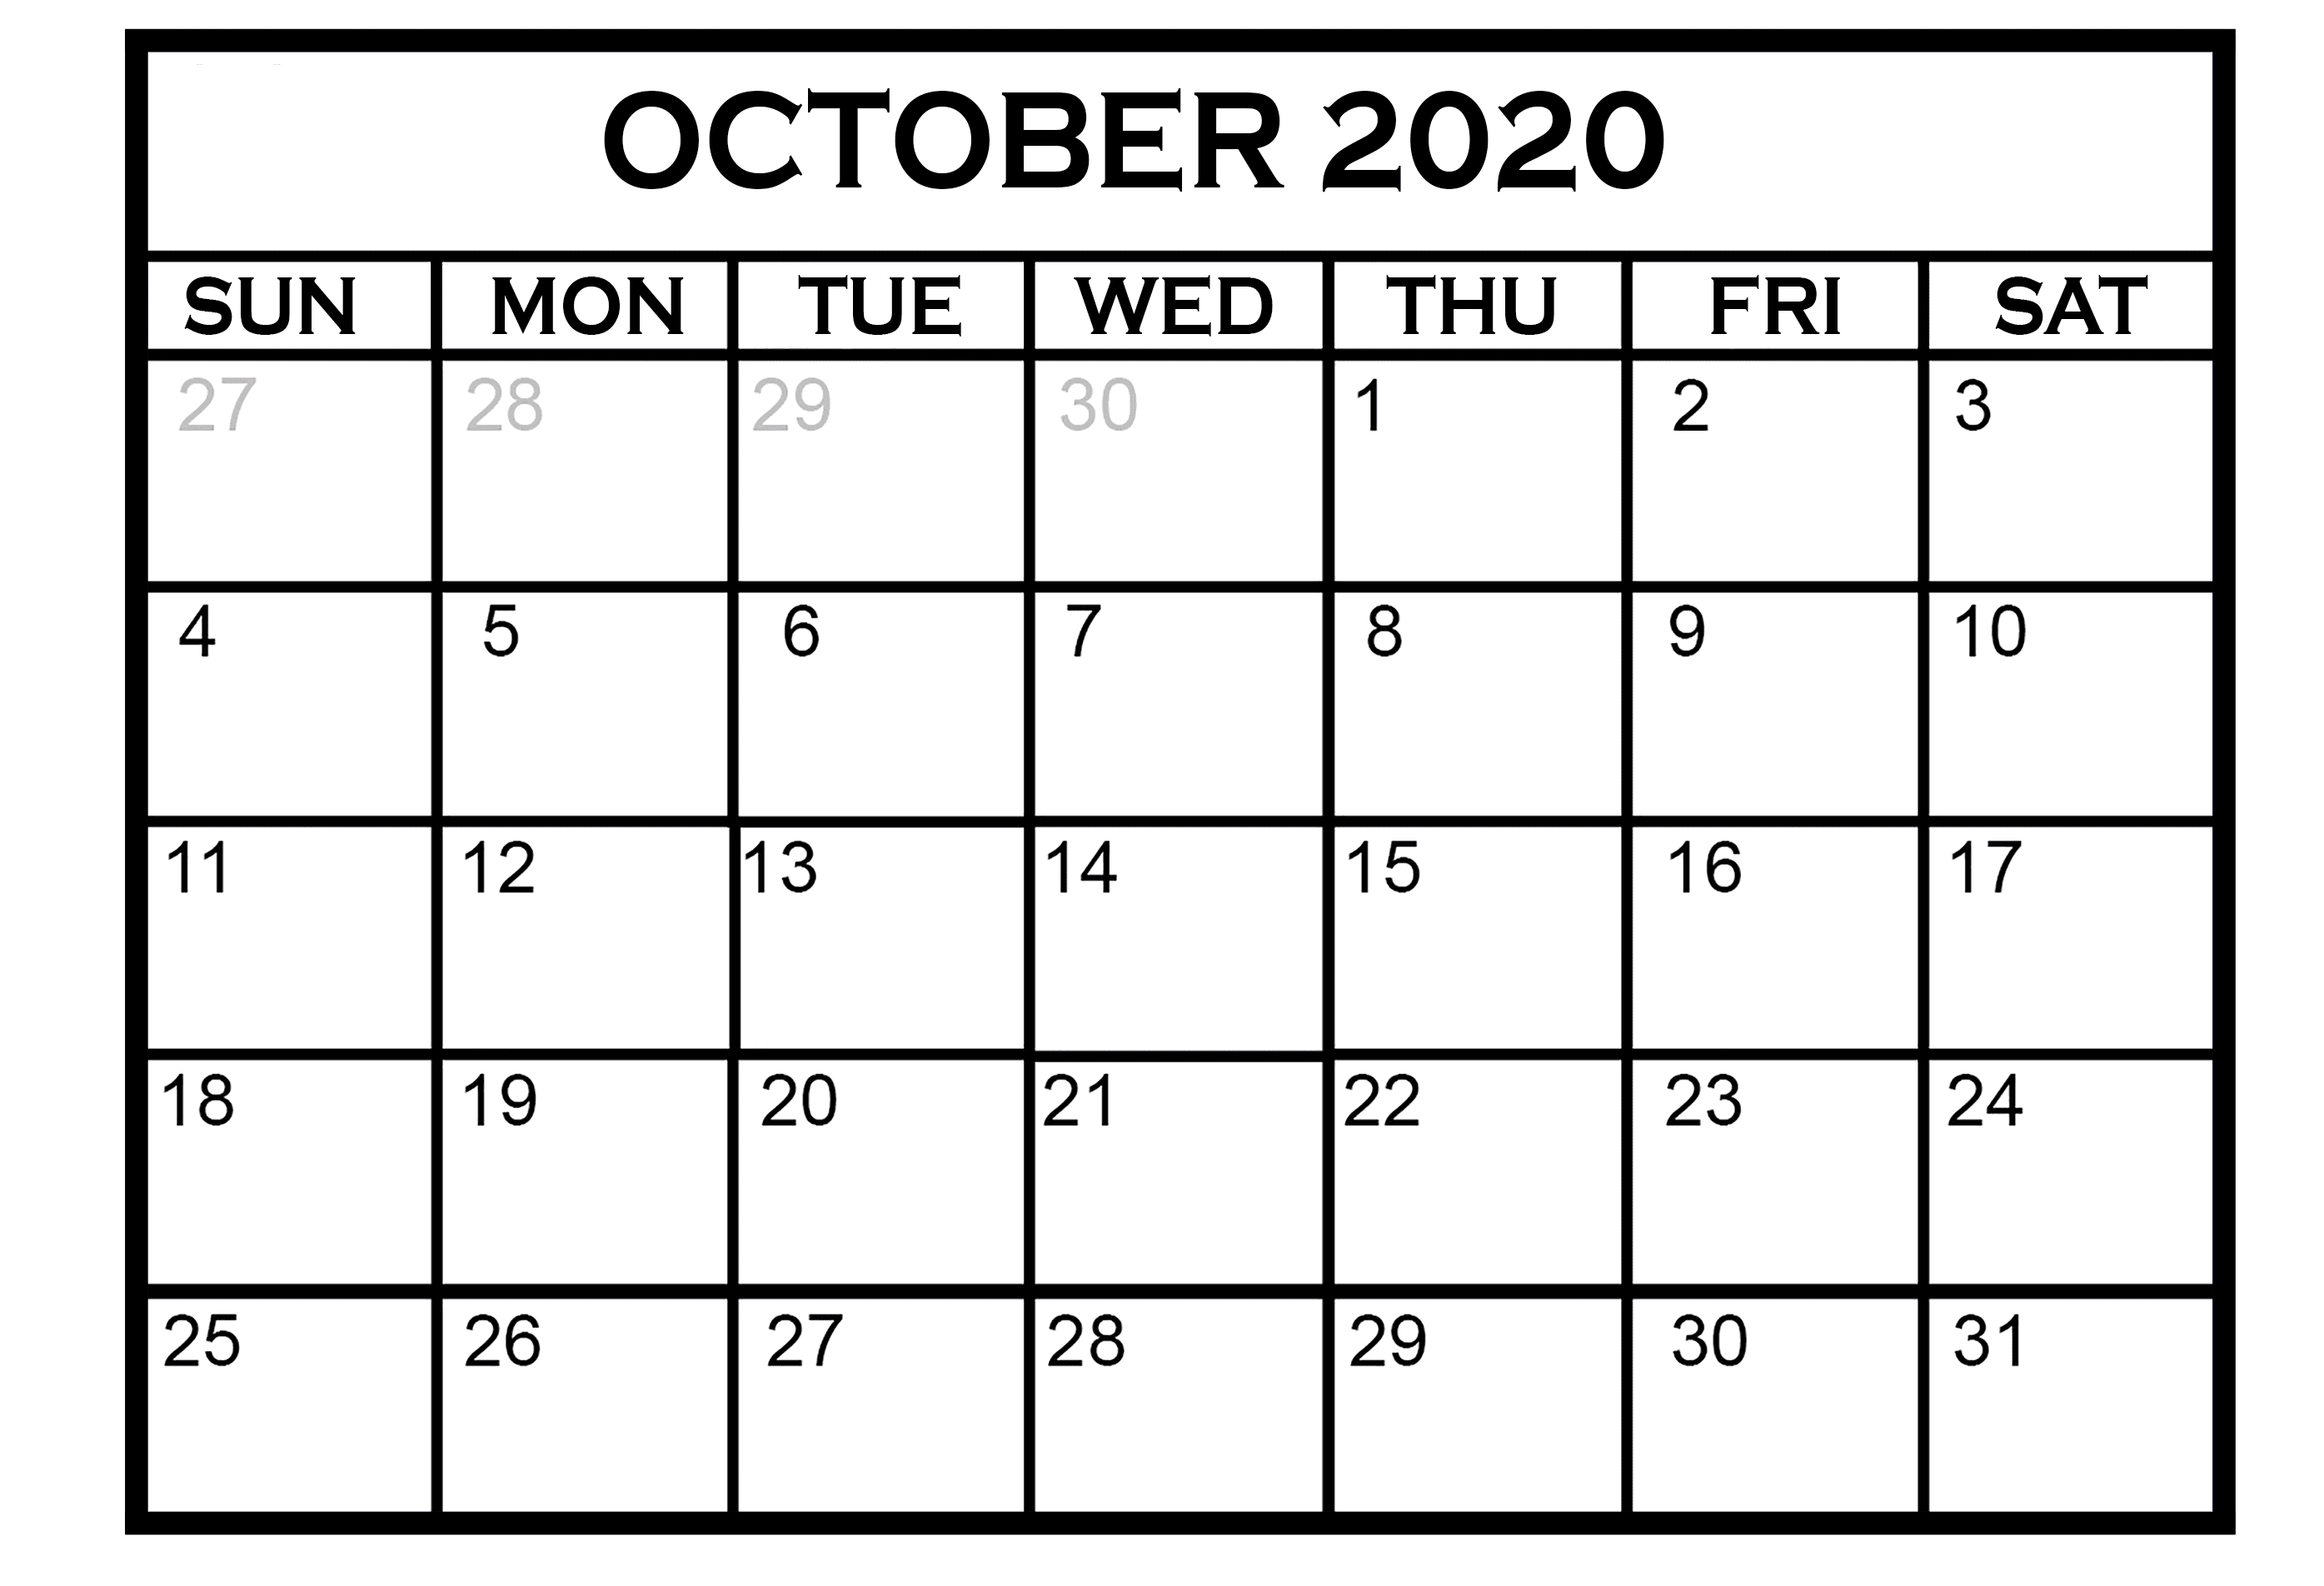 October 2020 Calendar Template Download